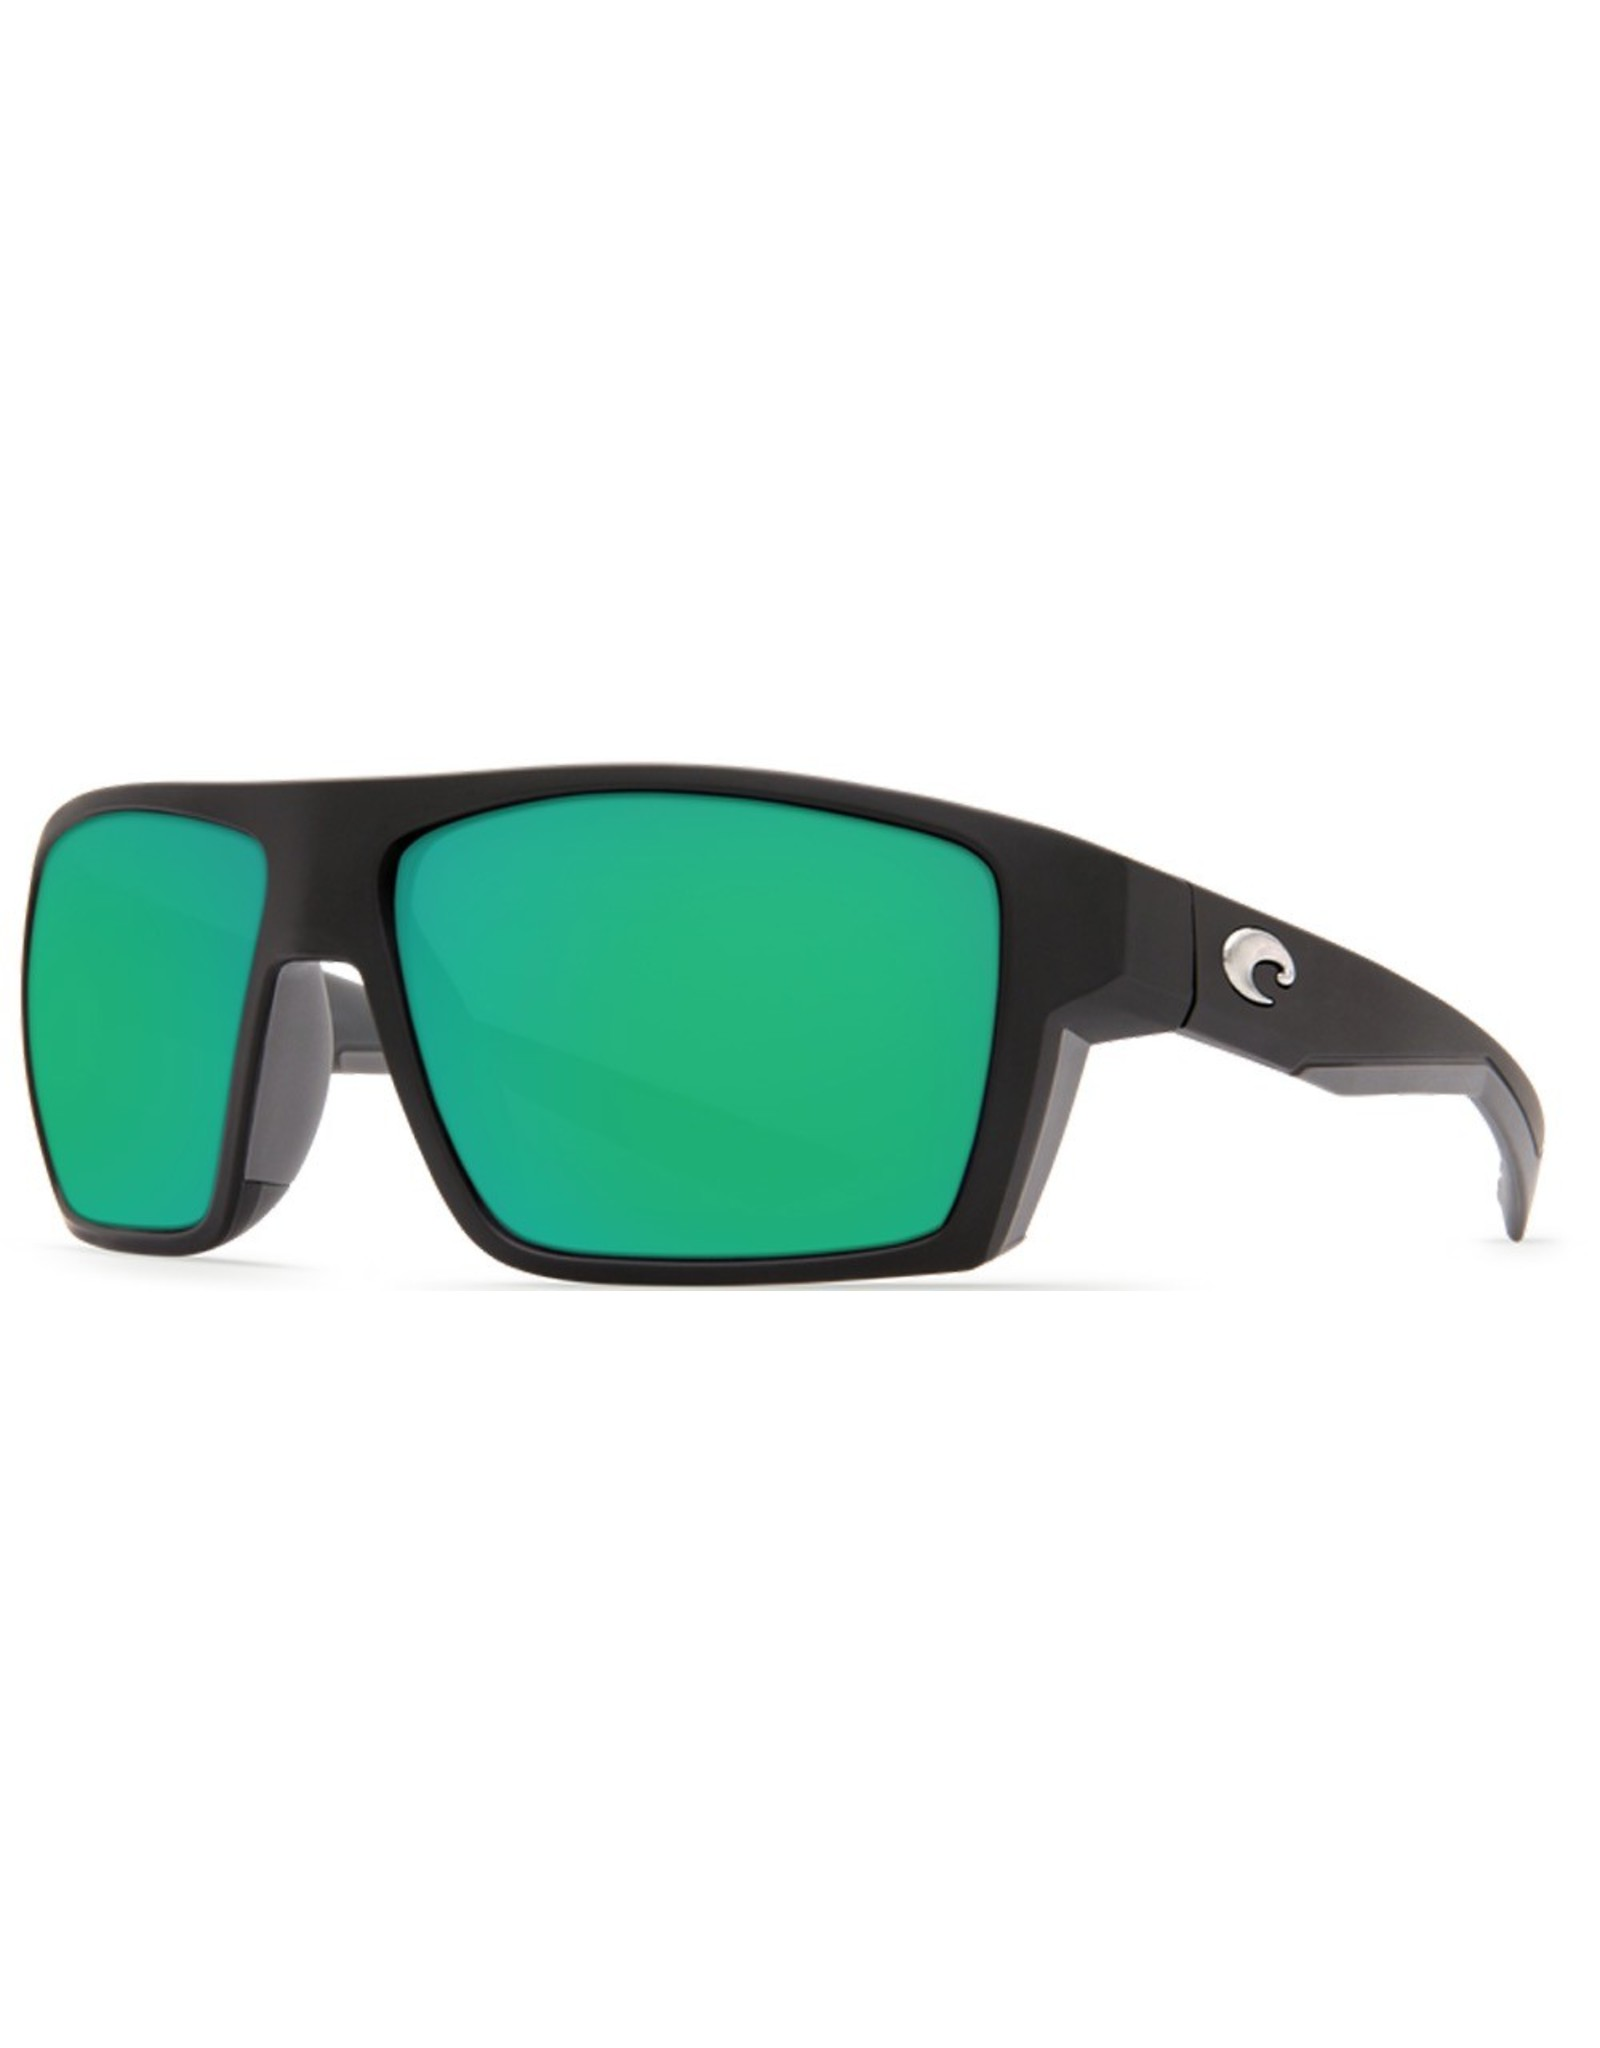 Costa Del Mar Bloke Matte Black/Matte Gray Green